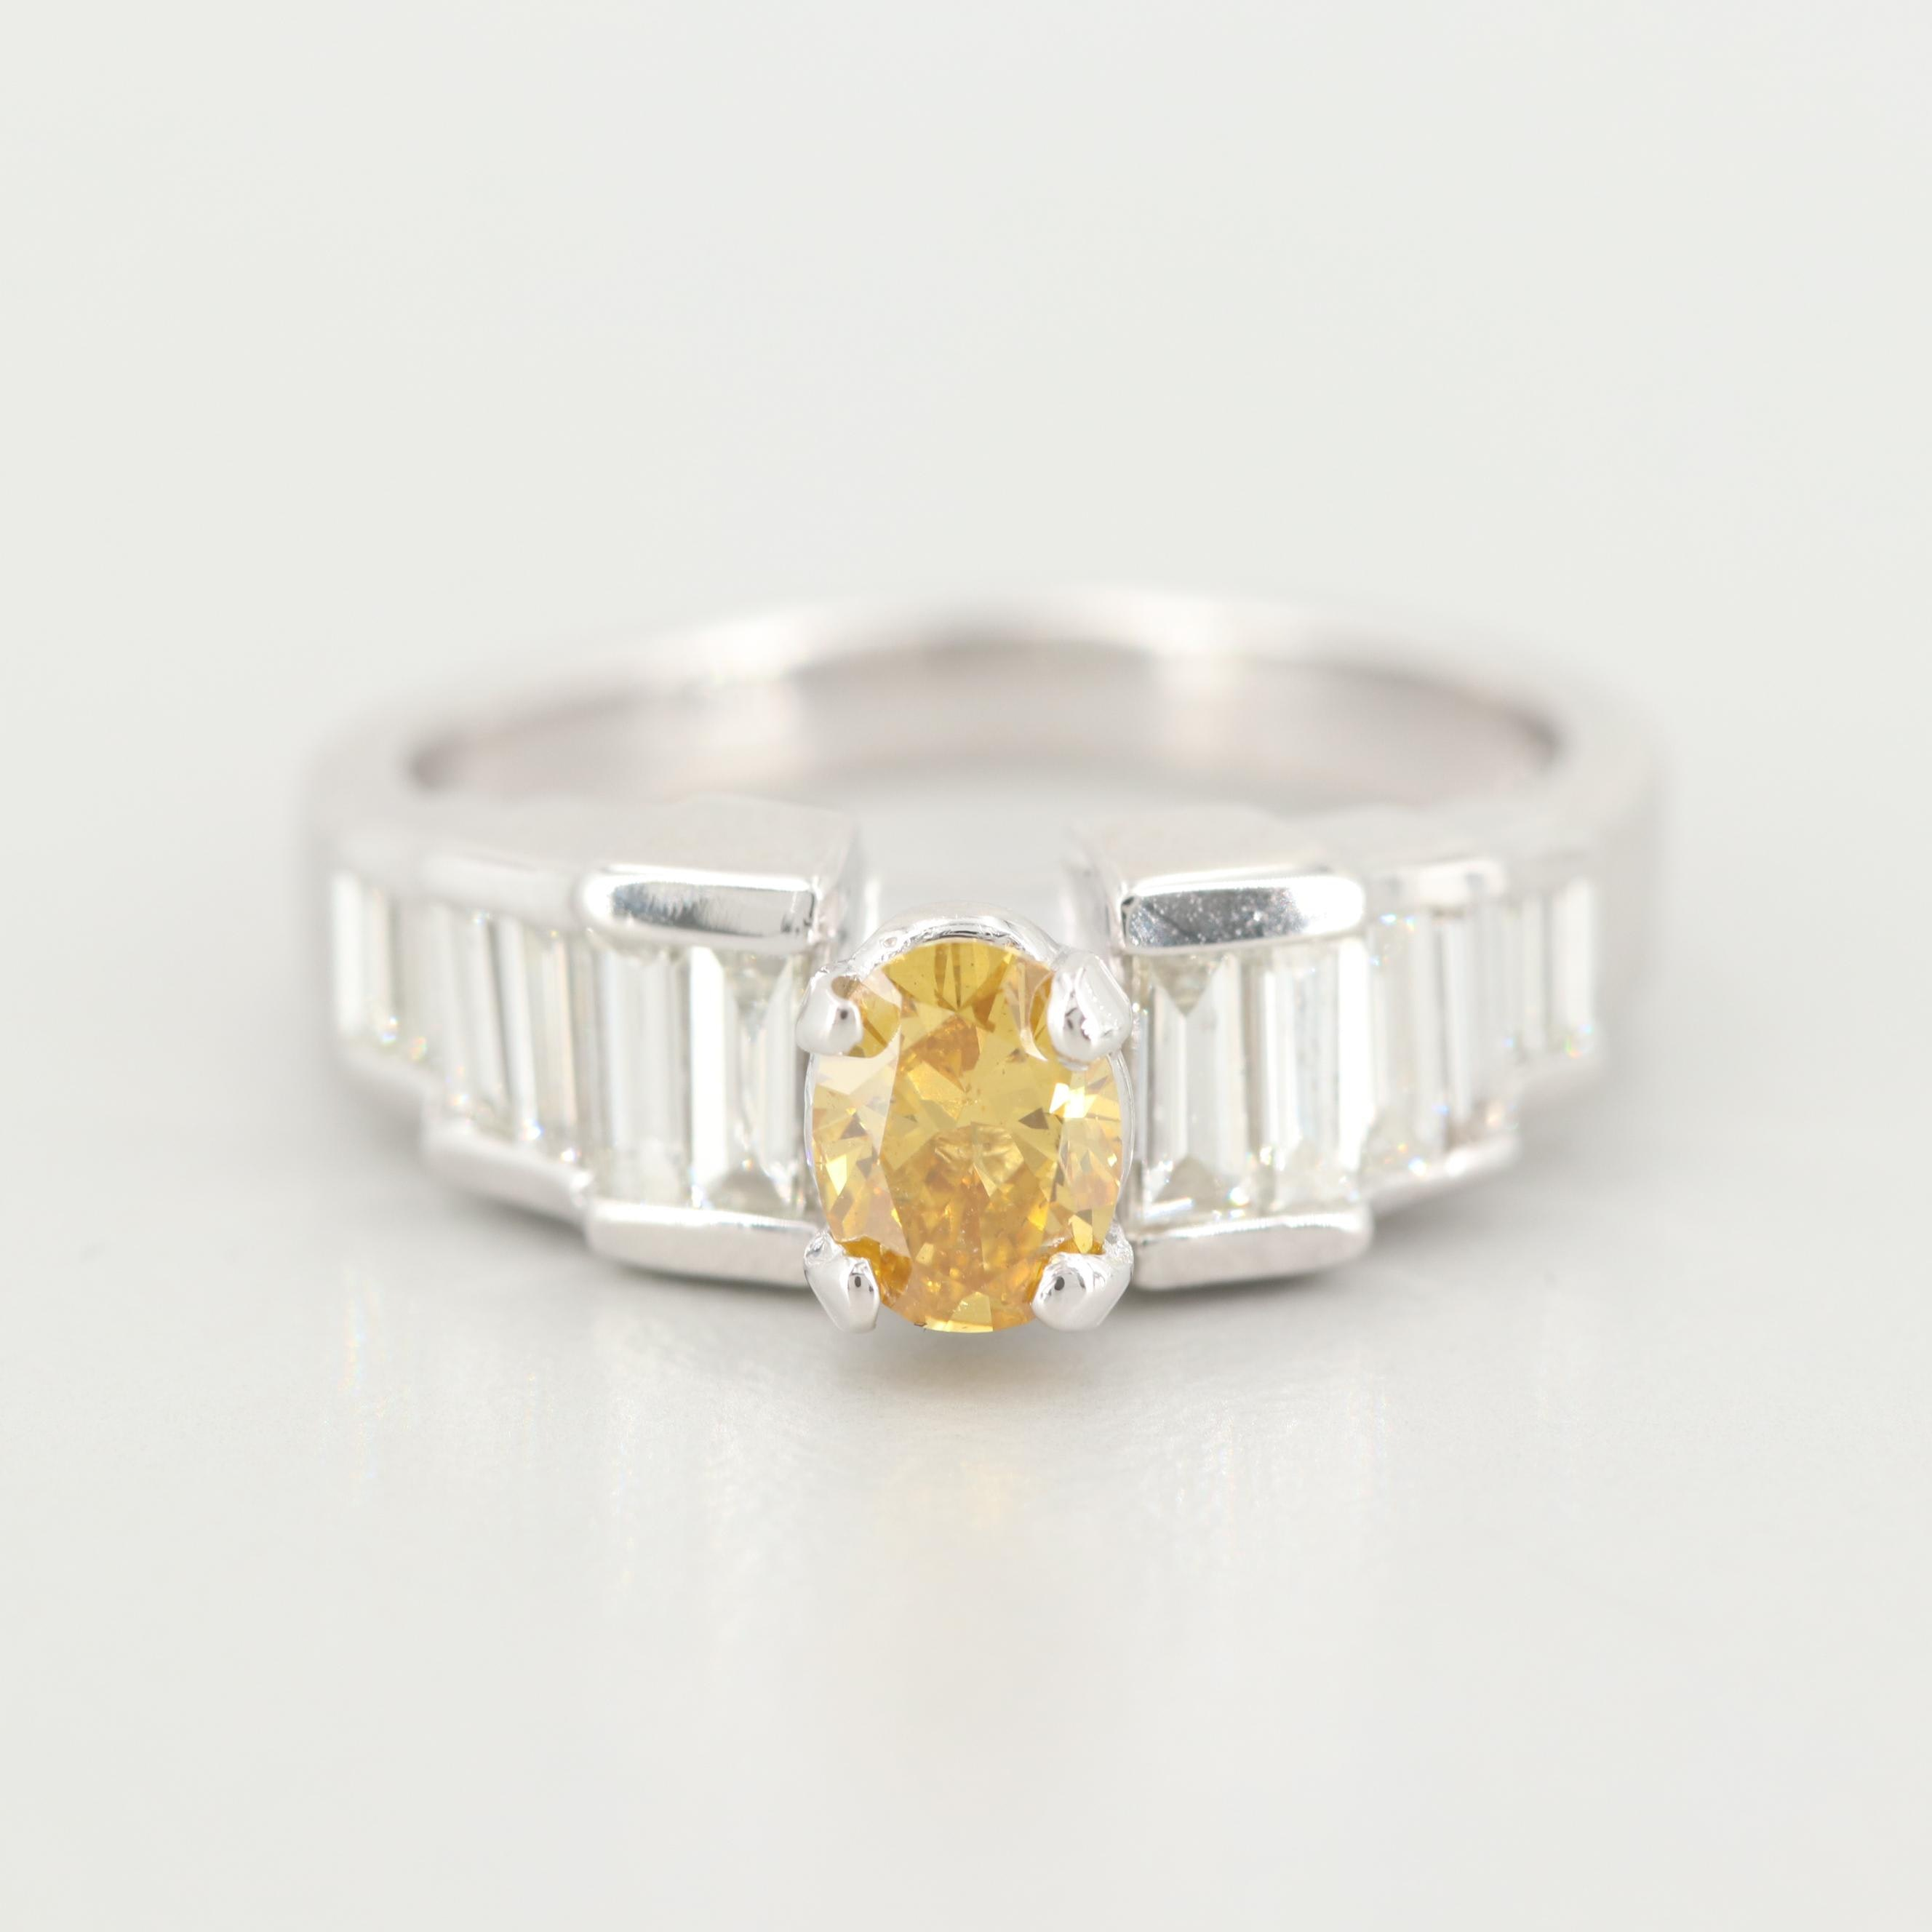 14K Gold 1.59 CTW Diamond Ring with GIA Report Including Fancy Yellow Diamond